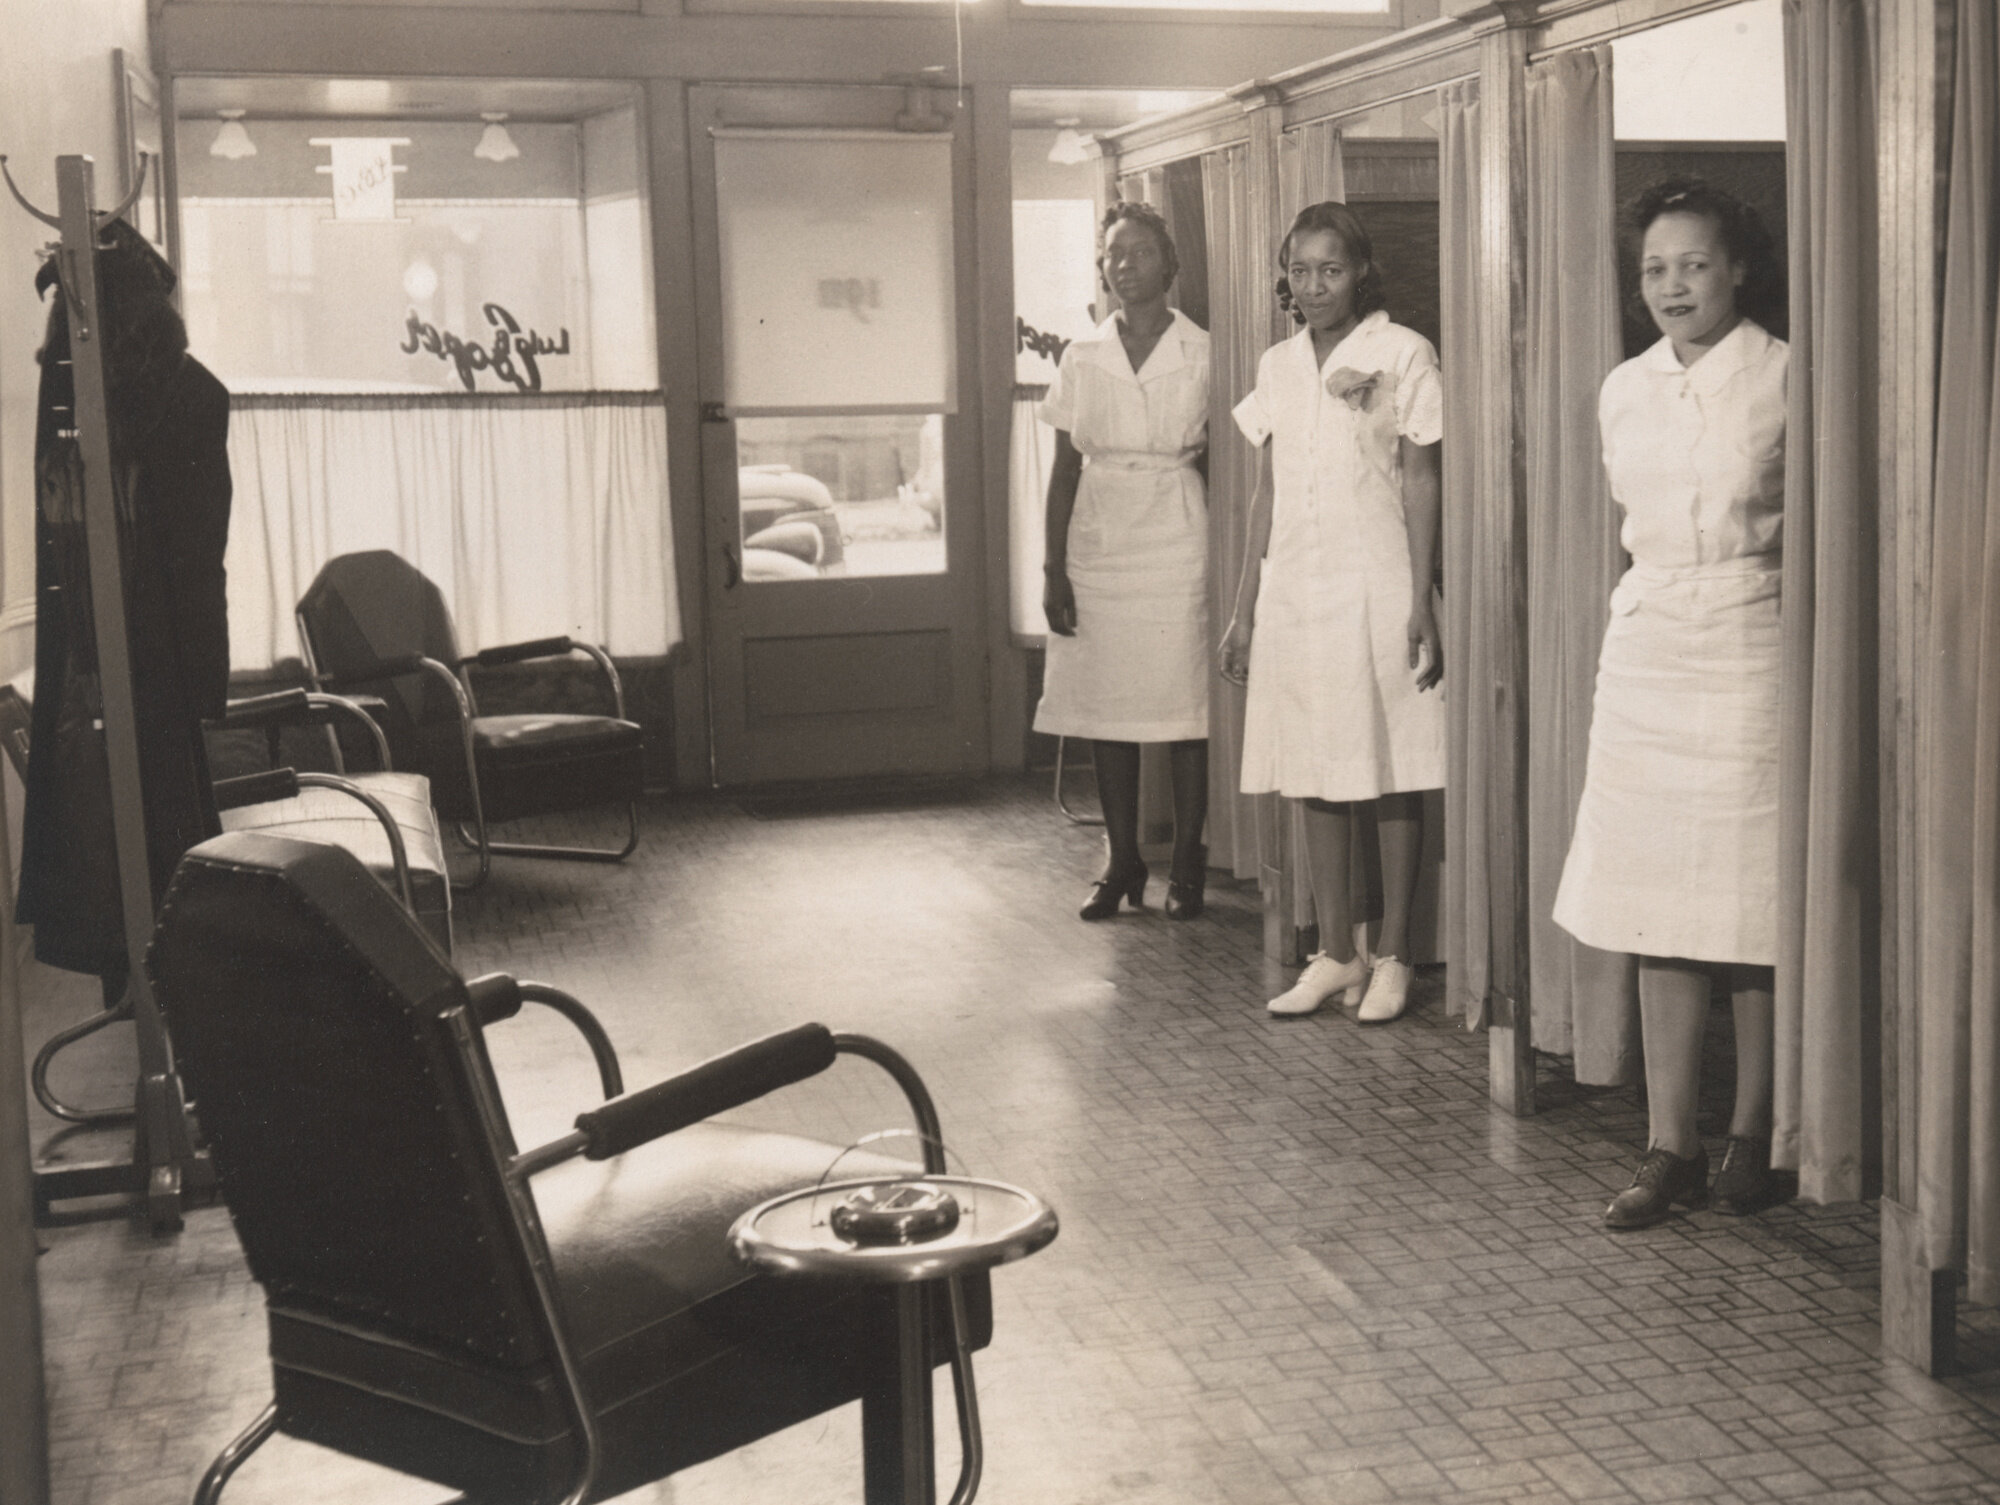 "Robert H. McNeill. Lula Cooper Beauty Salon. c. 1940. Gelatin silver print, 7 3/16 × 9 1/2"" (18.2 × 24.1 cm). Acquired through the generosity of The Friends of Education of The Museum of Modern Art and Committee on Photography Fund"